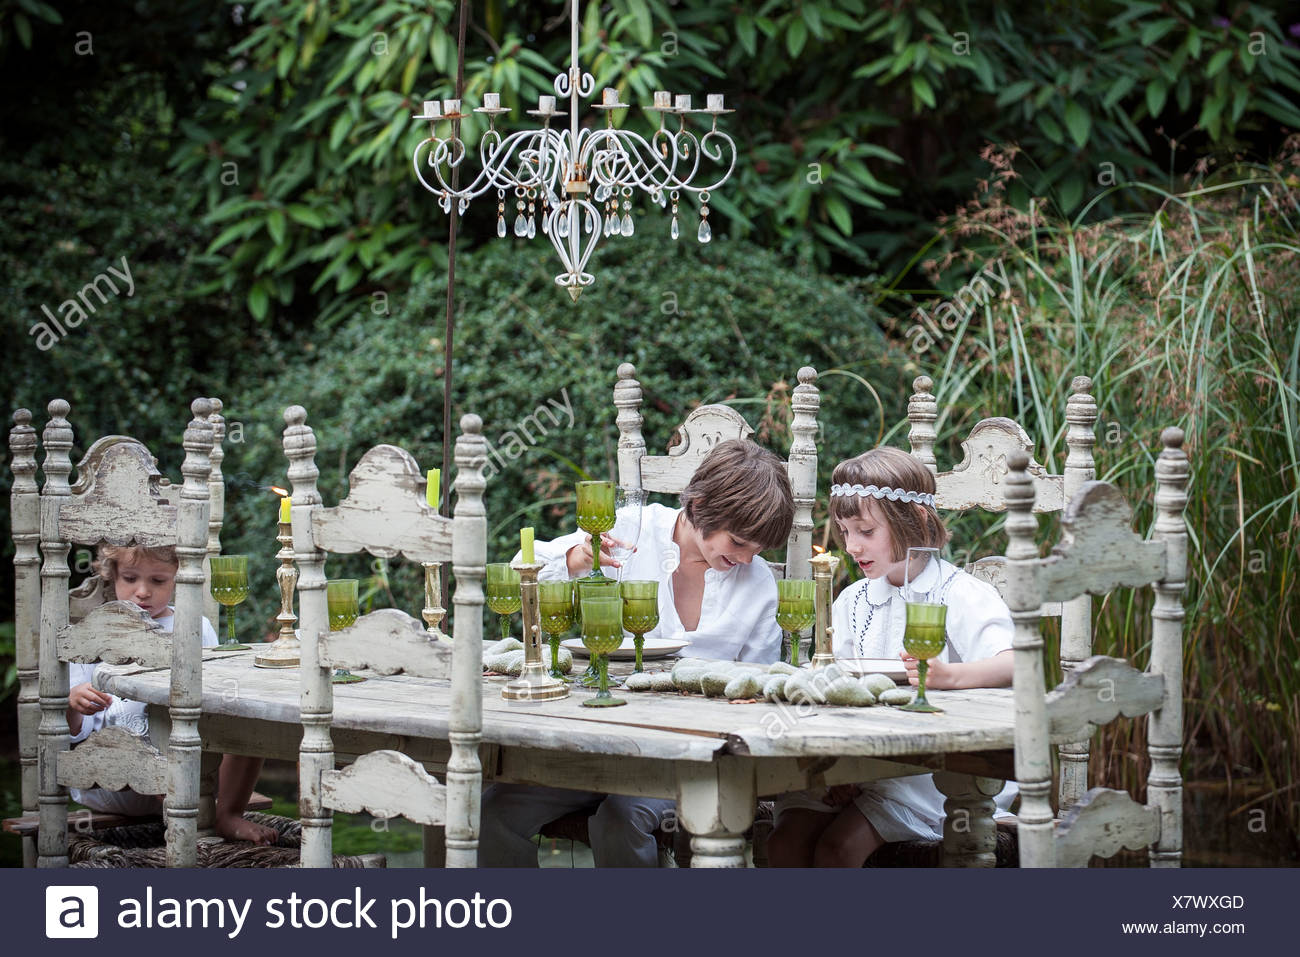 Children seated at ornate dining table outdoors - Stock Image